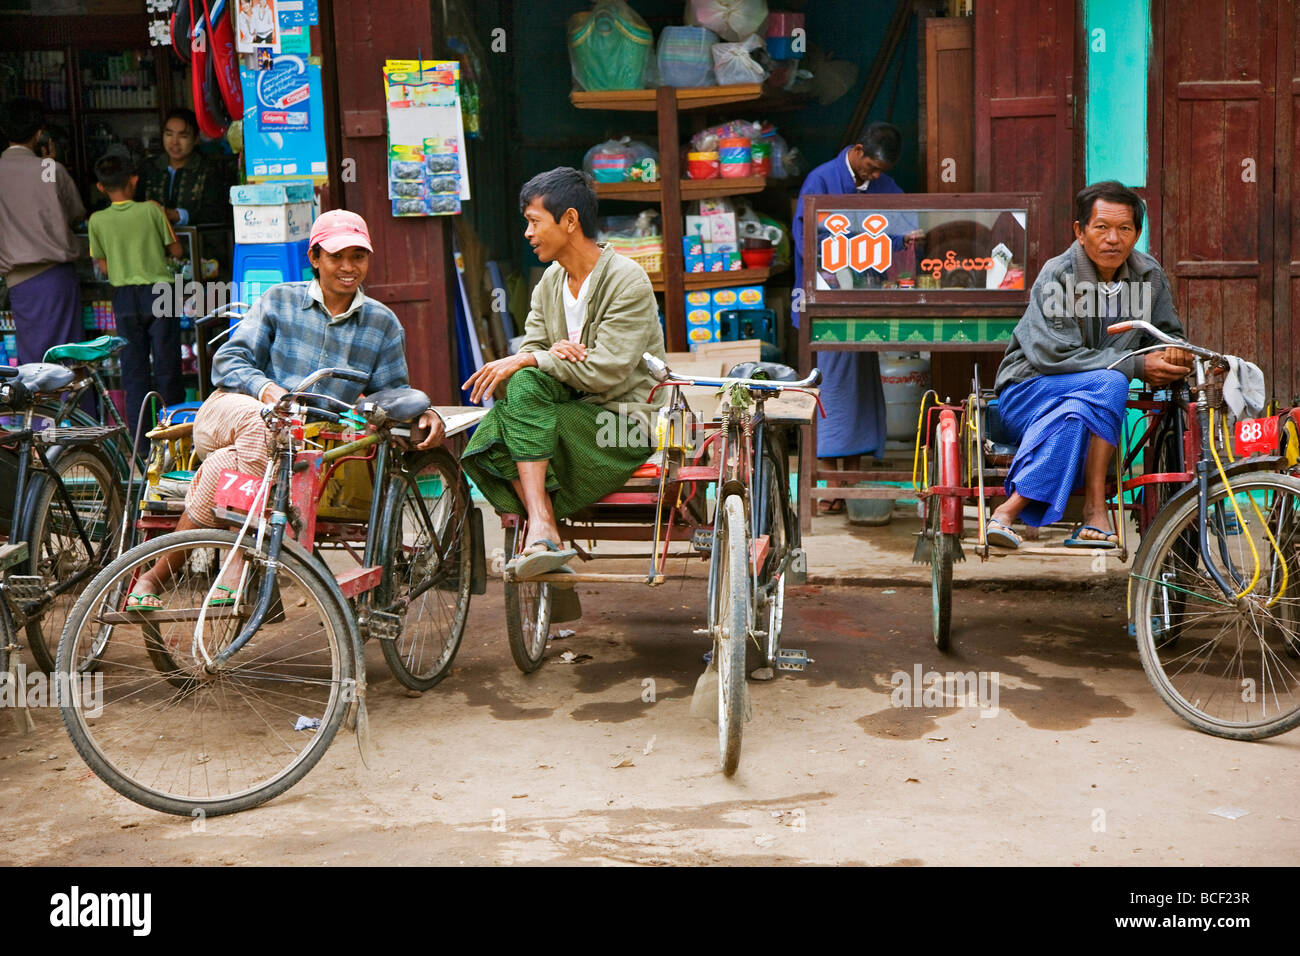 Myanmar. Burma. Nyaung U. The owners of bicycle taxis with sidecars, known as trishaws, relax at Nyaung U market. - Stock Image